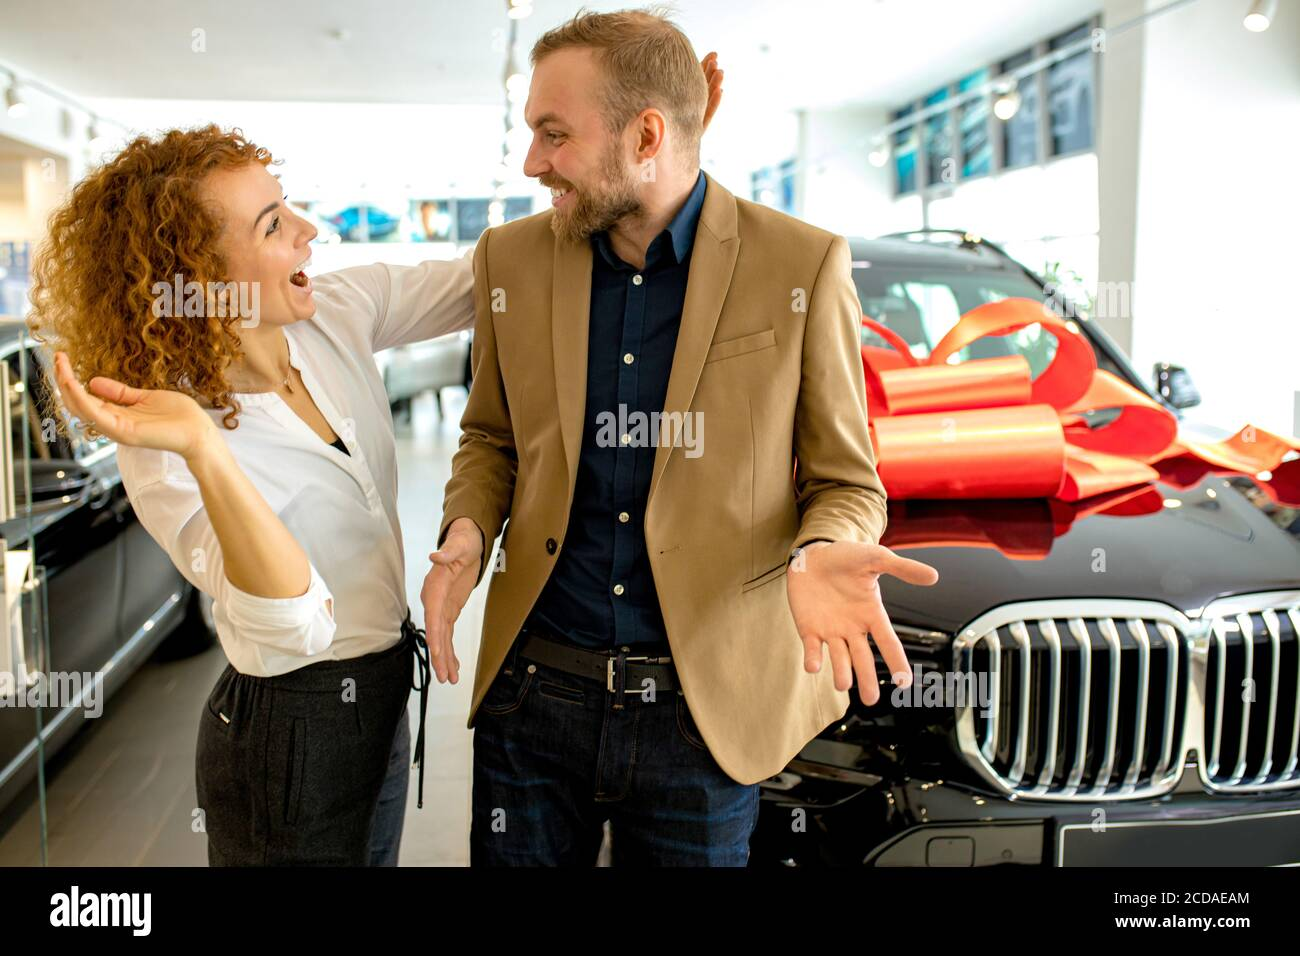 beautiful caucasian lady make surprise to husband in dealership. woman give new car wrapped in red bow to her husband, birthday gift. she openes man's Stock Photo